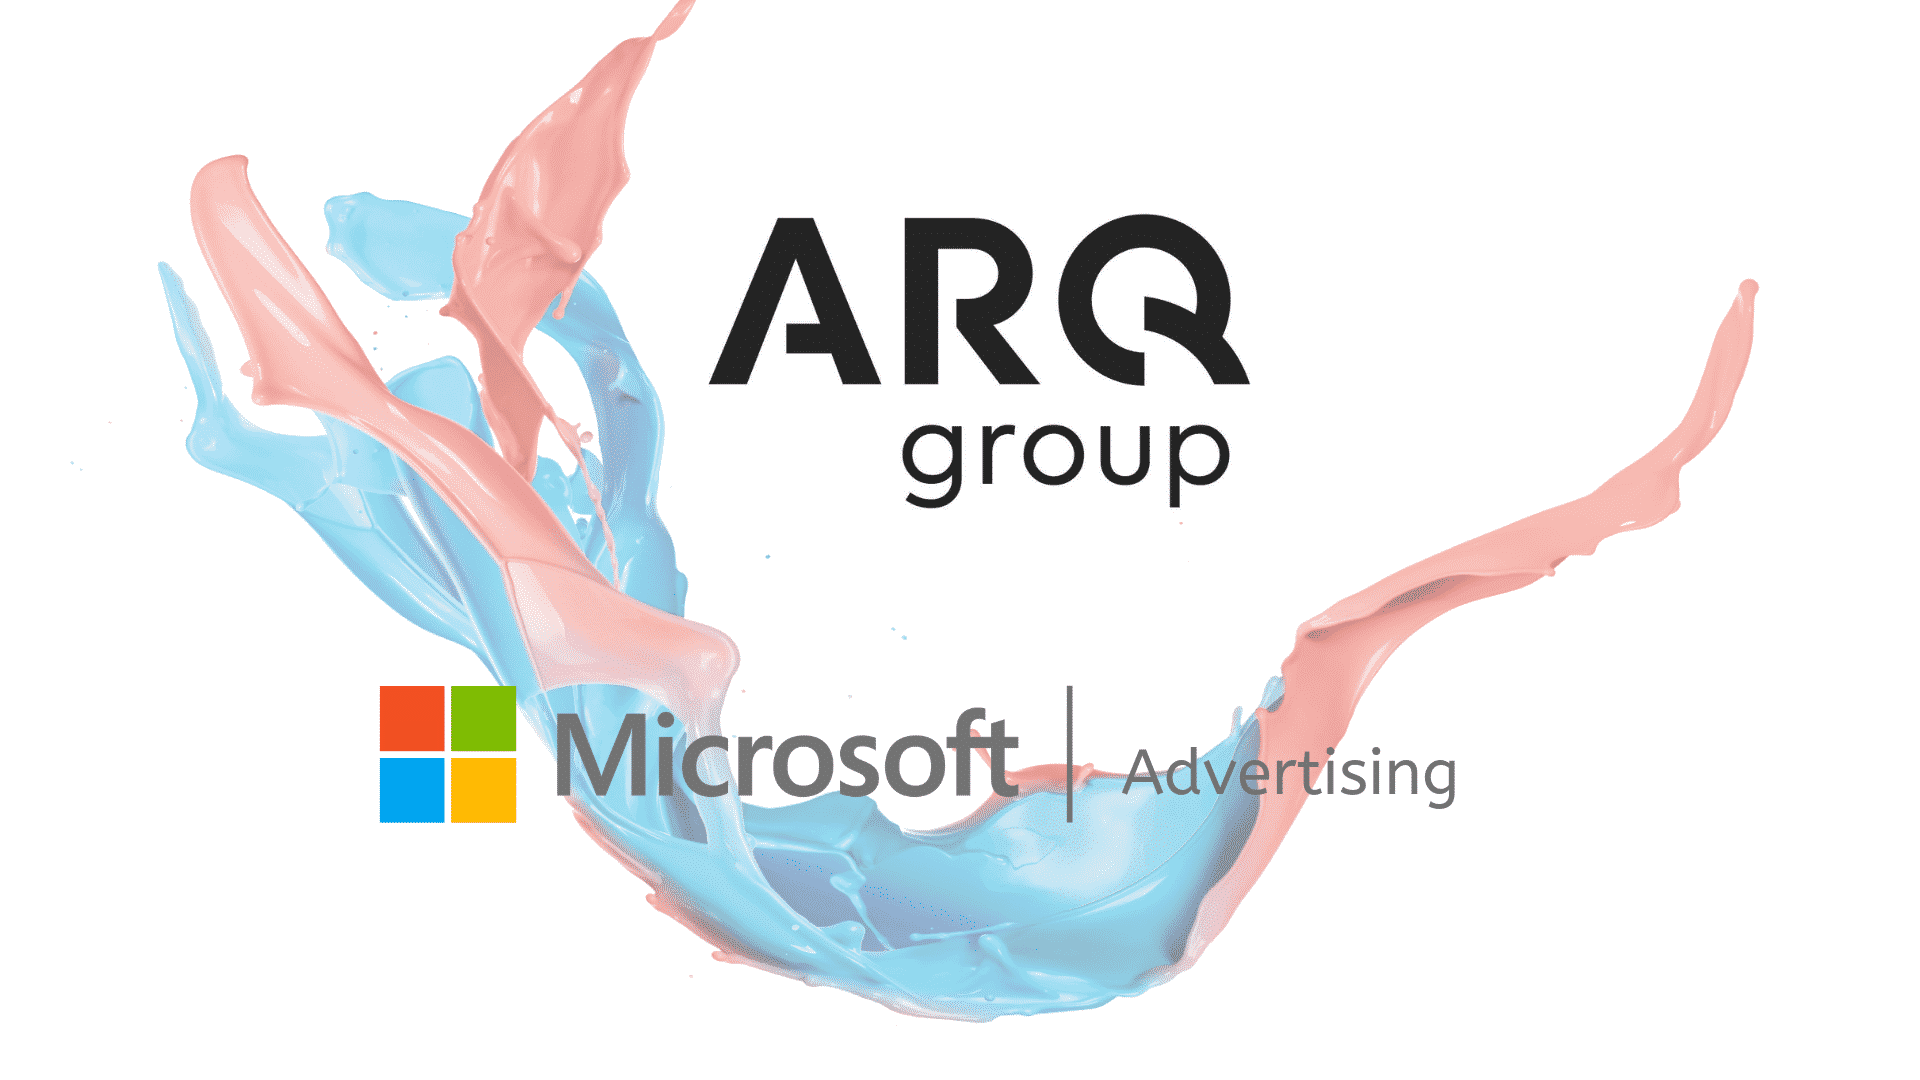 ARQ Group Sets up Partnership with Microsoft Advertising To Further Expand Its Reach